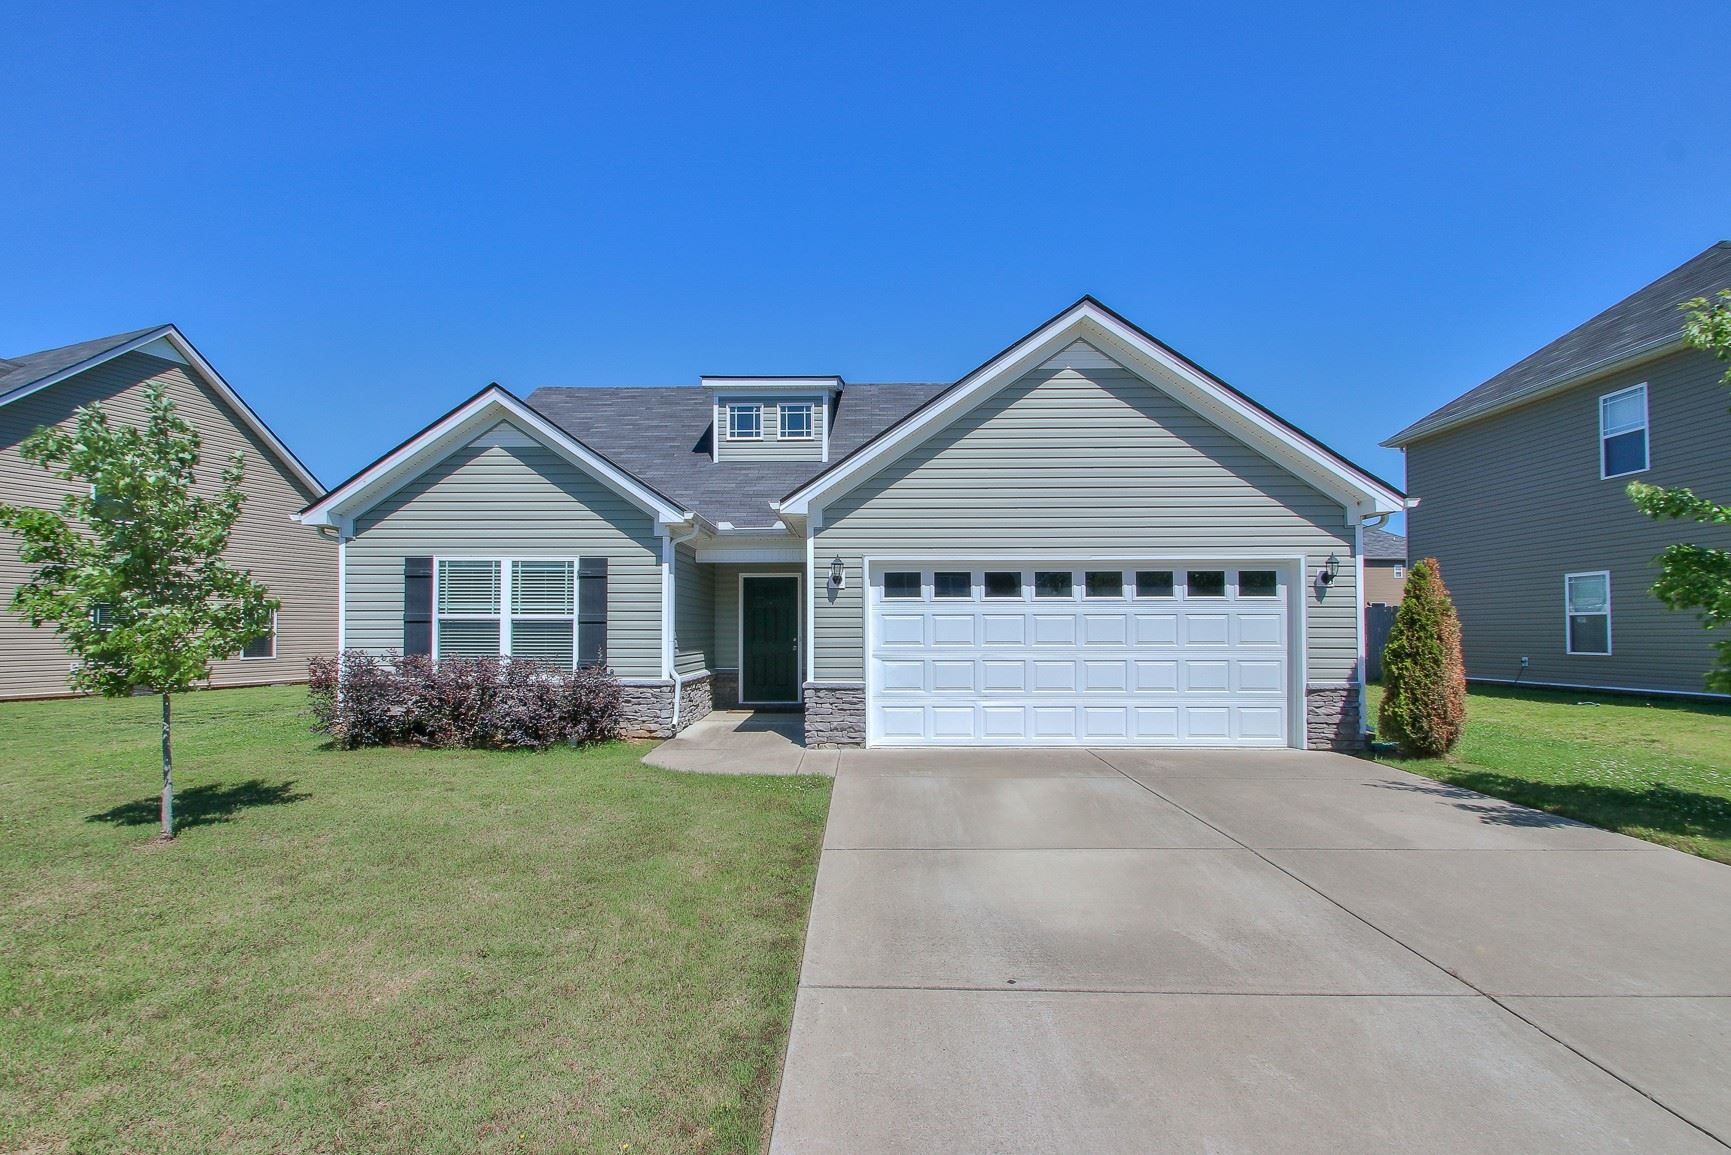 Photo of 2136 Longhunter Chase Dr, Spring Hill, TN 37174 (MLS # 2263604)